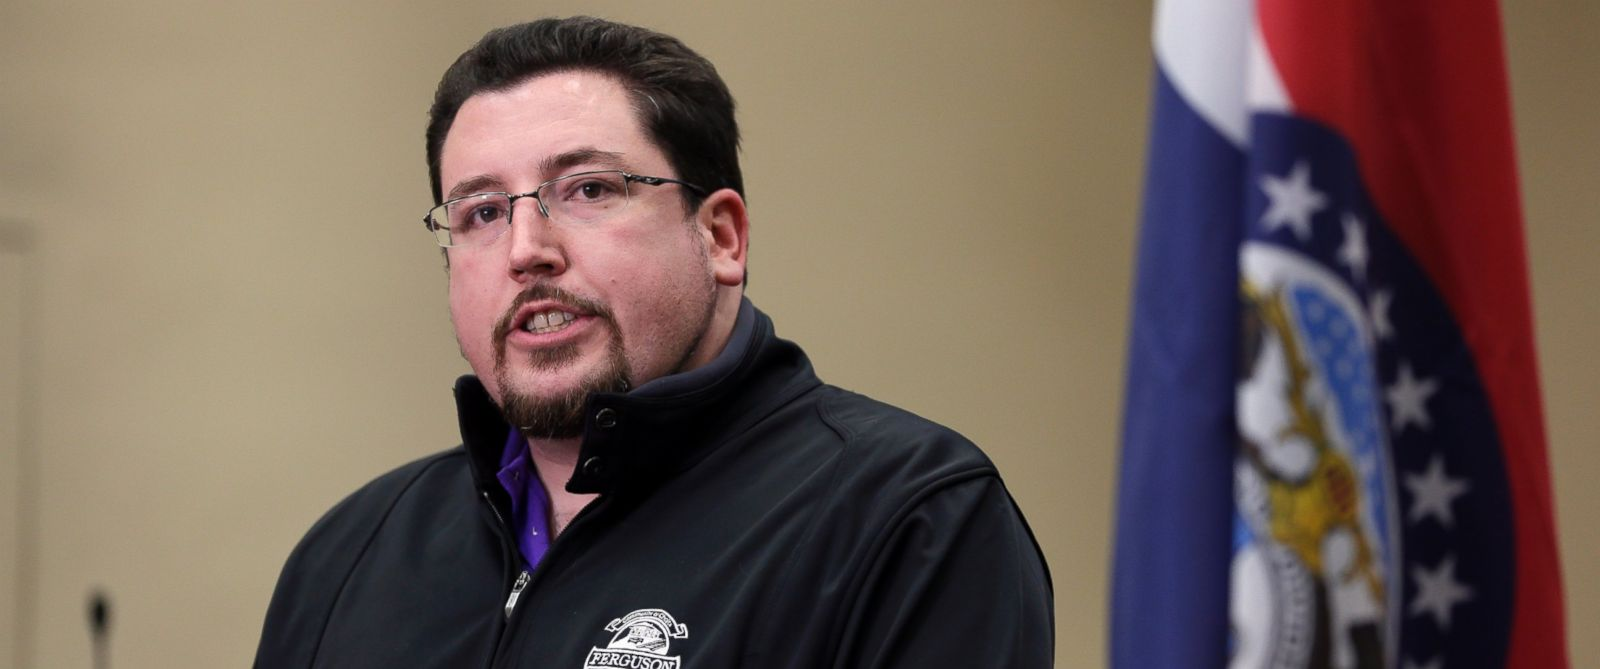 PHOTO: Ferguson Mayor James Knowles III announces the resignation of police chief Thomas Jackson during a news conference Wednesday, March 11, 2015, in Ferguson, Mo.